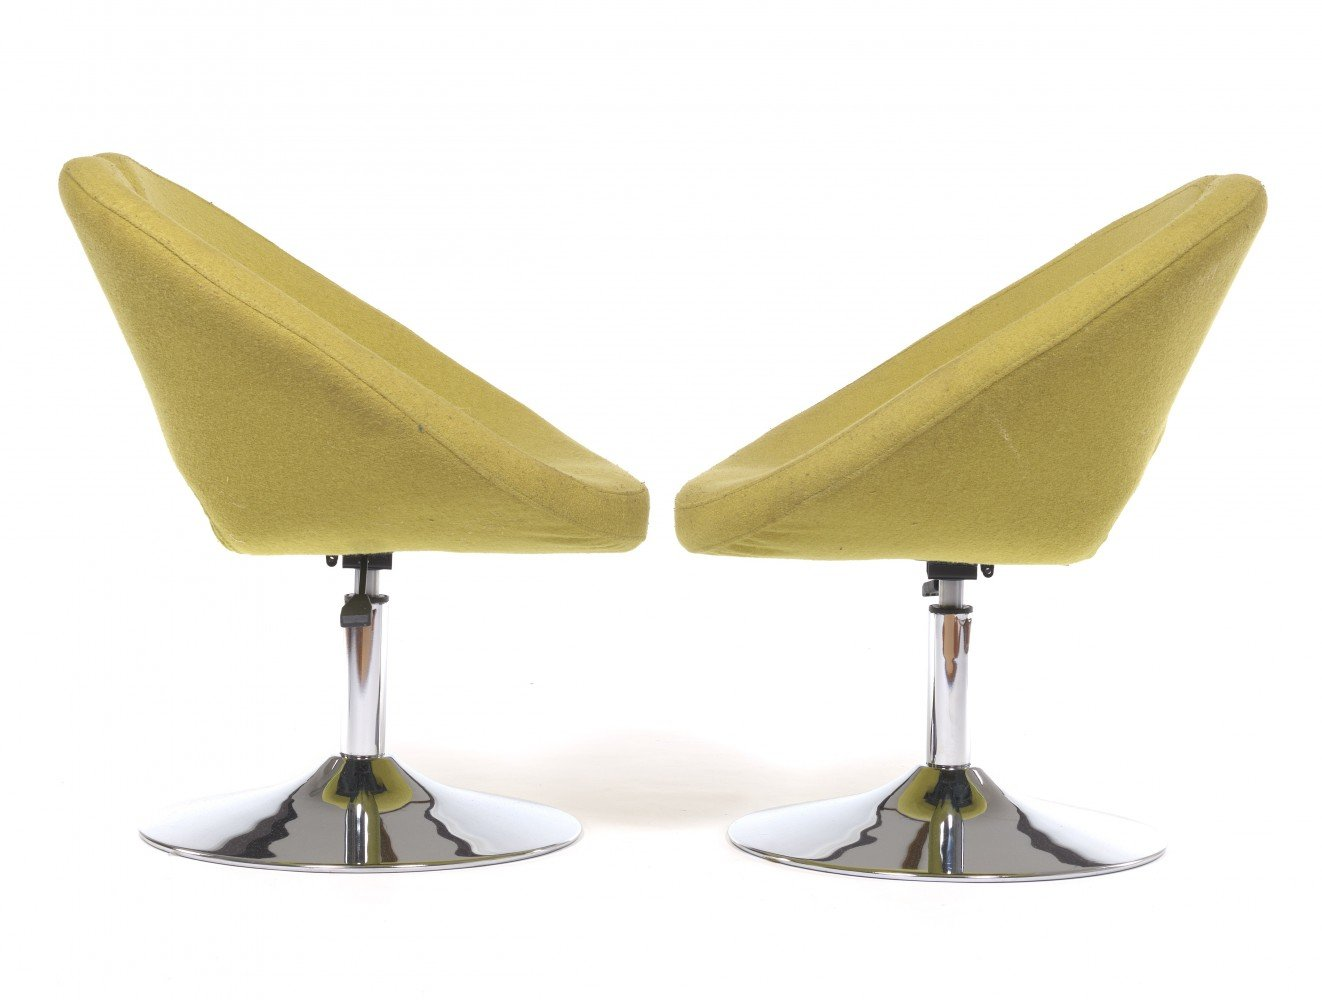 Swivel chair with foamed wooden shell, connected to the aluminum base with chrome tube, upholstered in chartreuse by French Artist Norguet